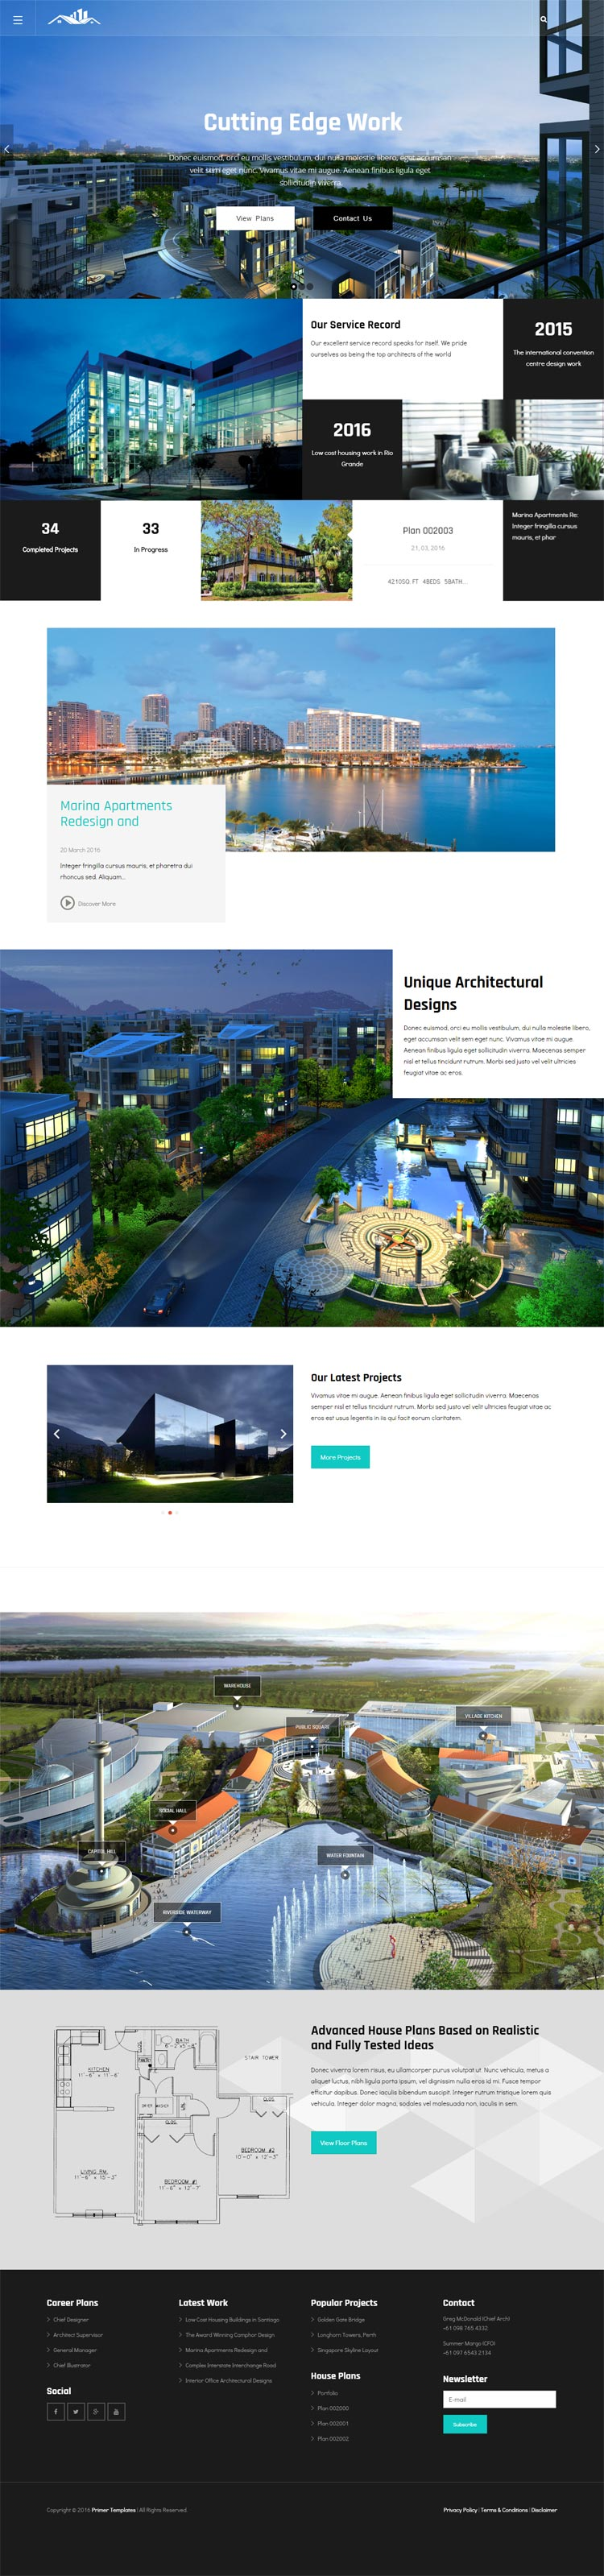 Architecture Joomla! template